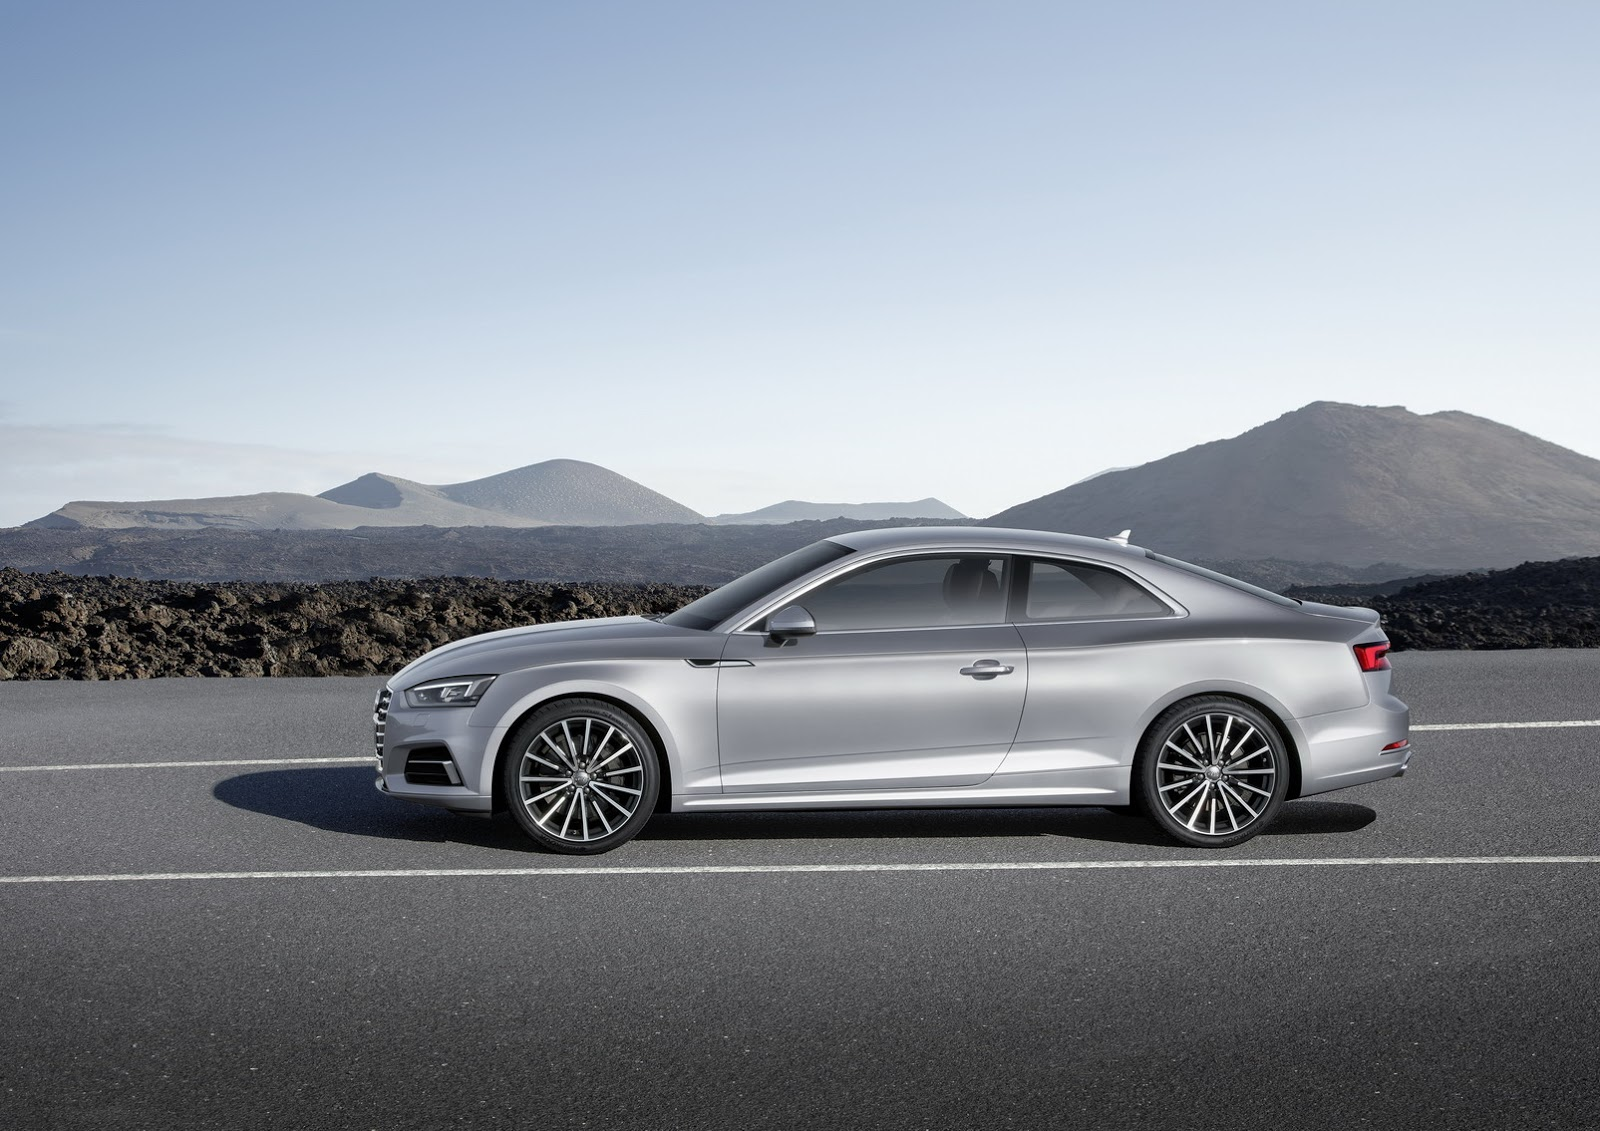 2017 Audi A5 Coupe Has Classic Proportions and 286 HP 30 TDI